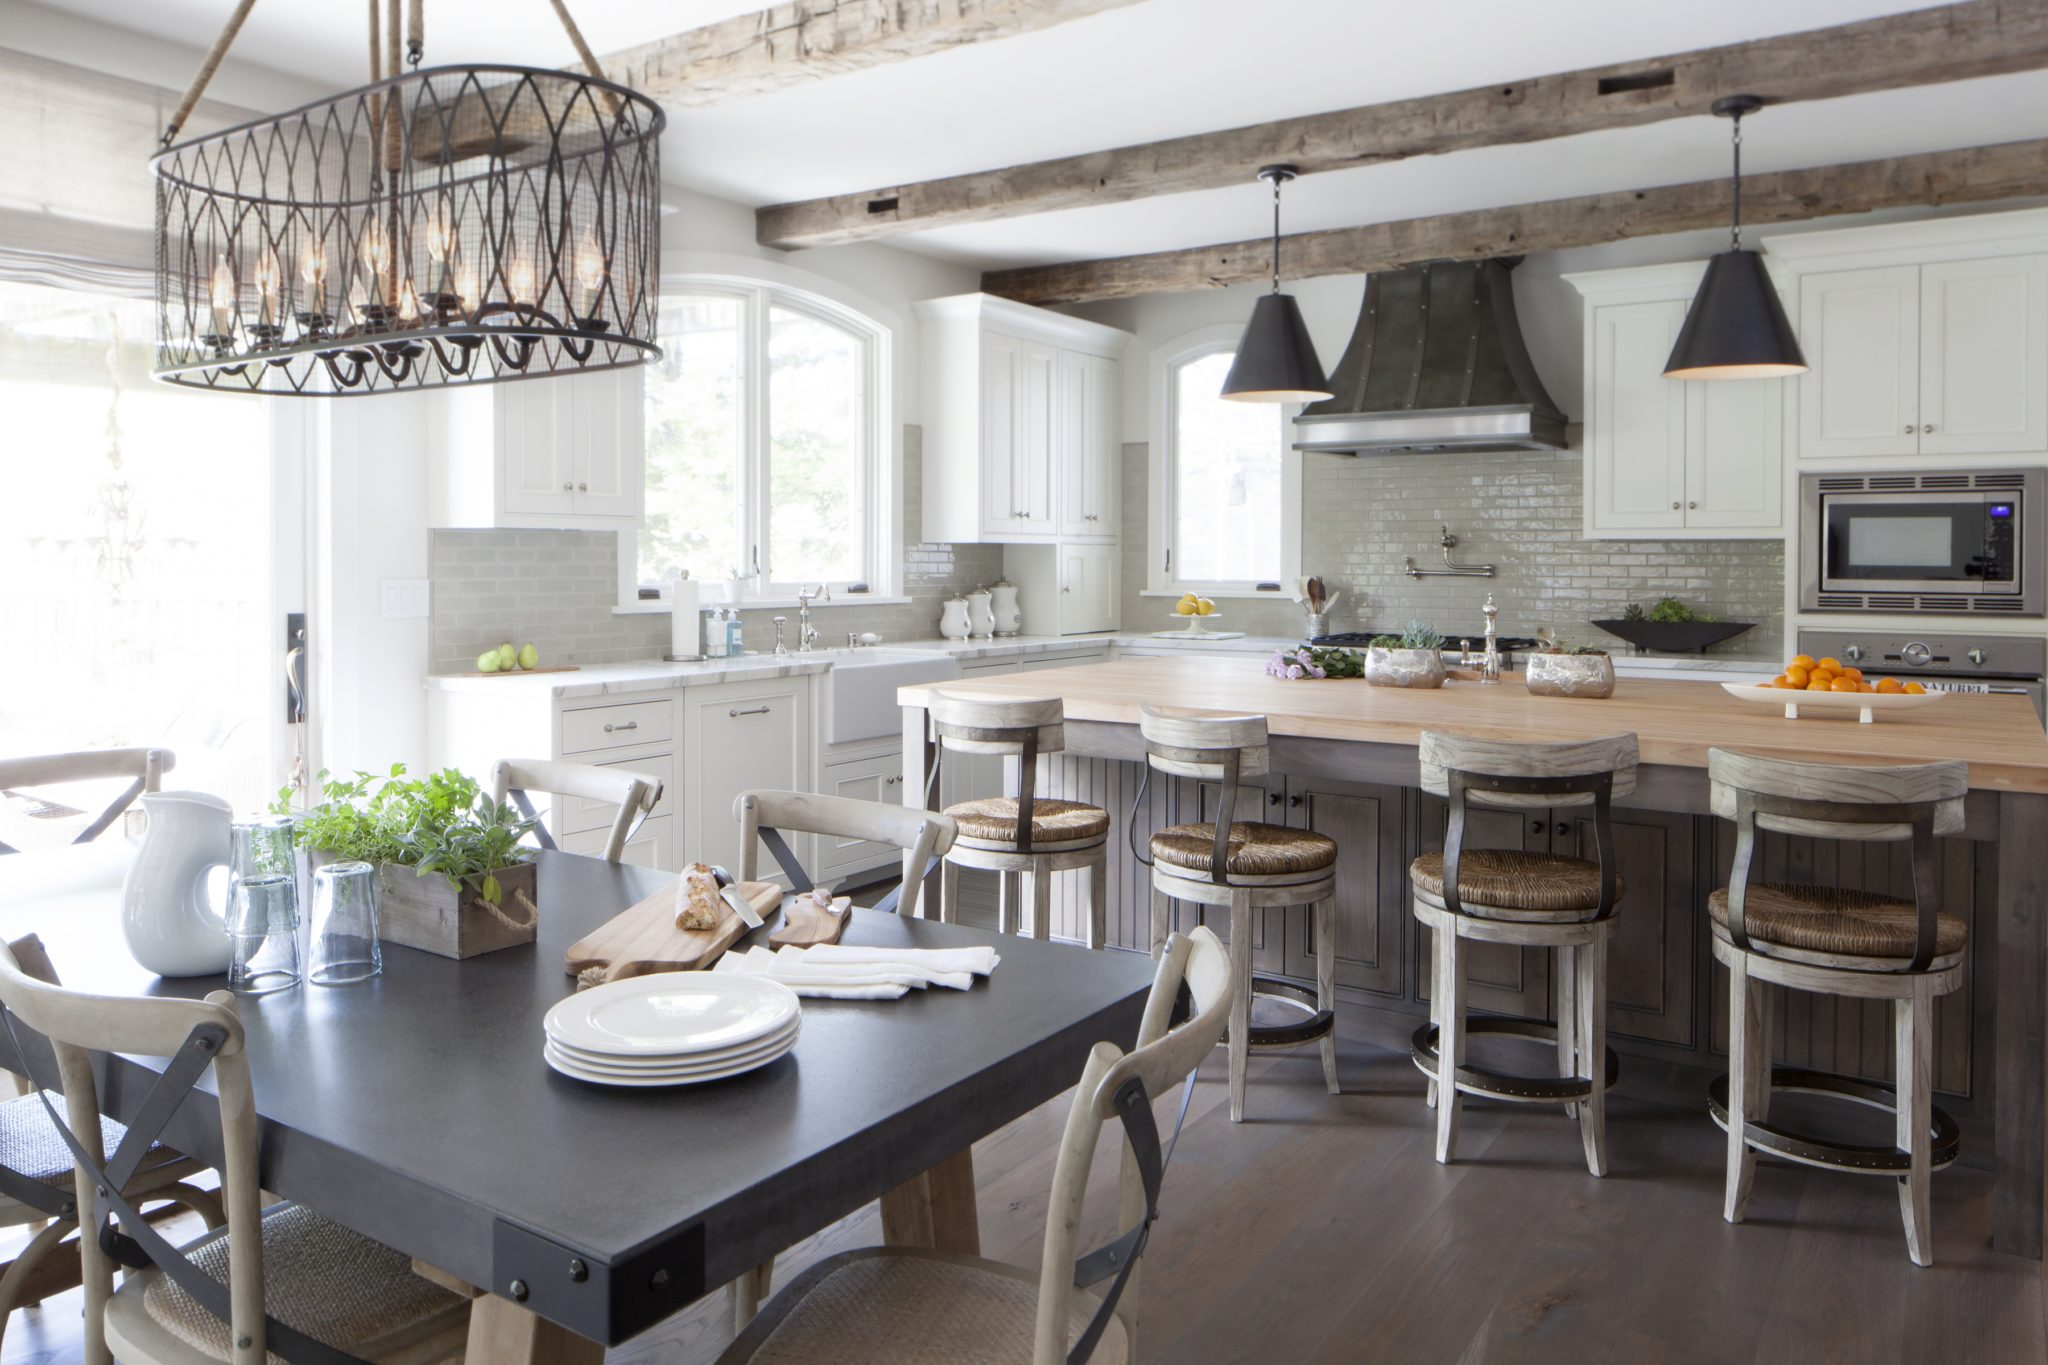 French rustic kitchen with warm grays, wood grain and natural textures by Fiorella Design, LLC